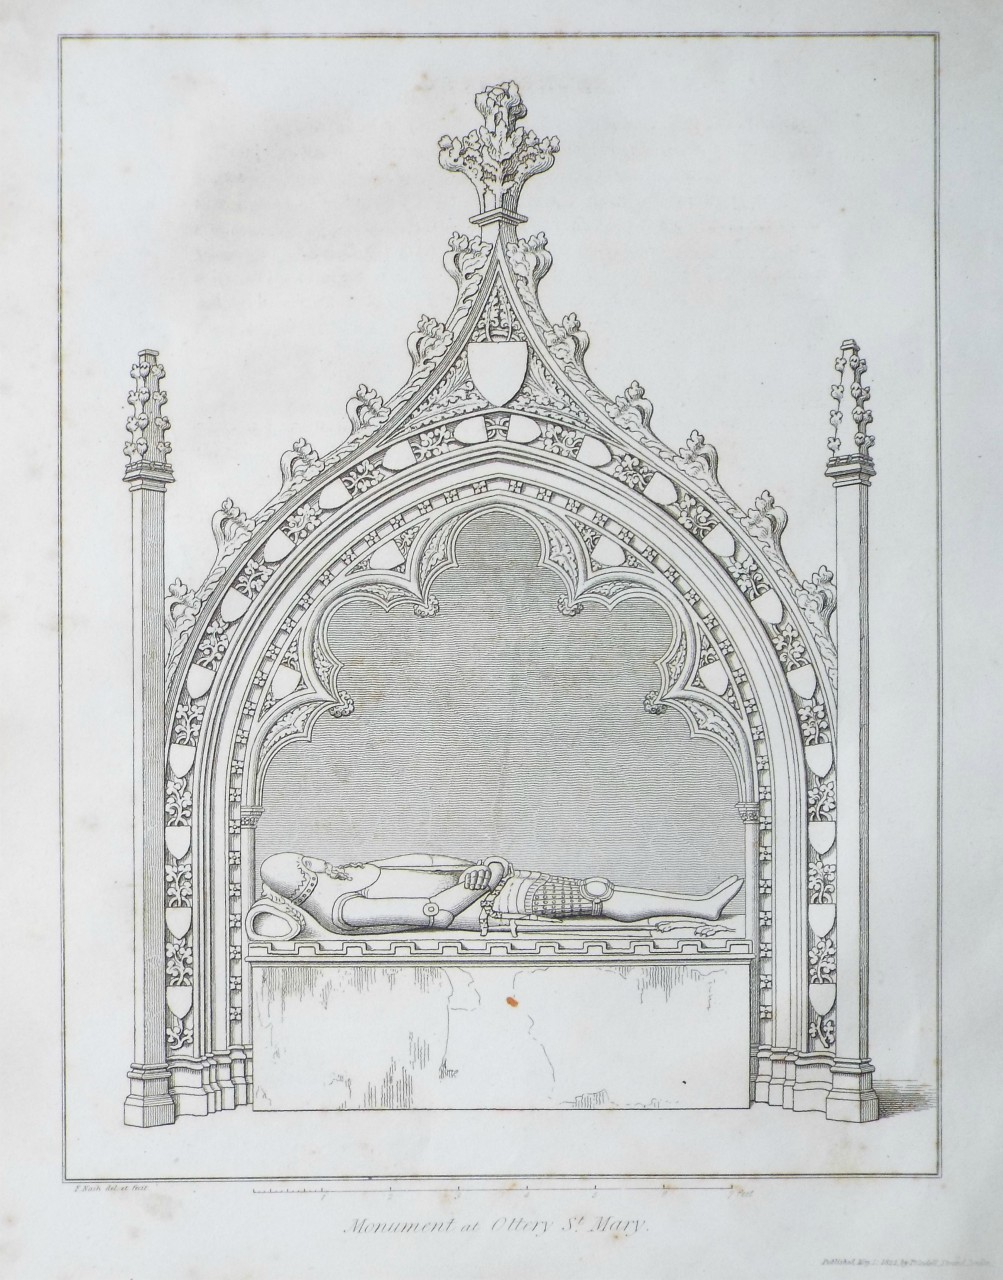 Print - Monument at Ottery St. Mary. - Nash